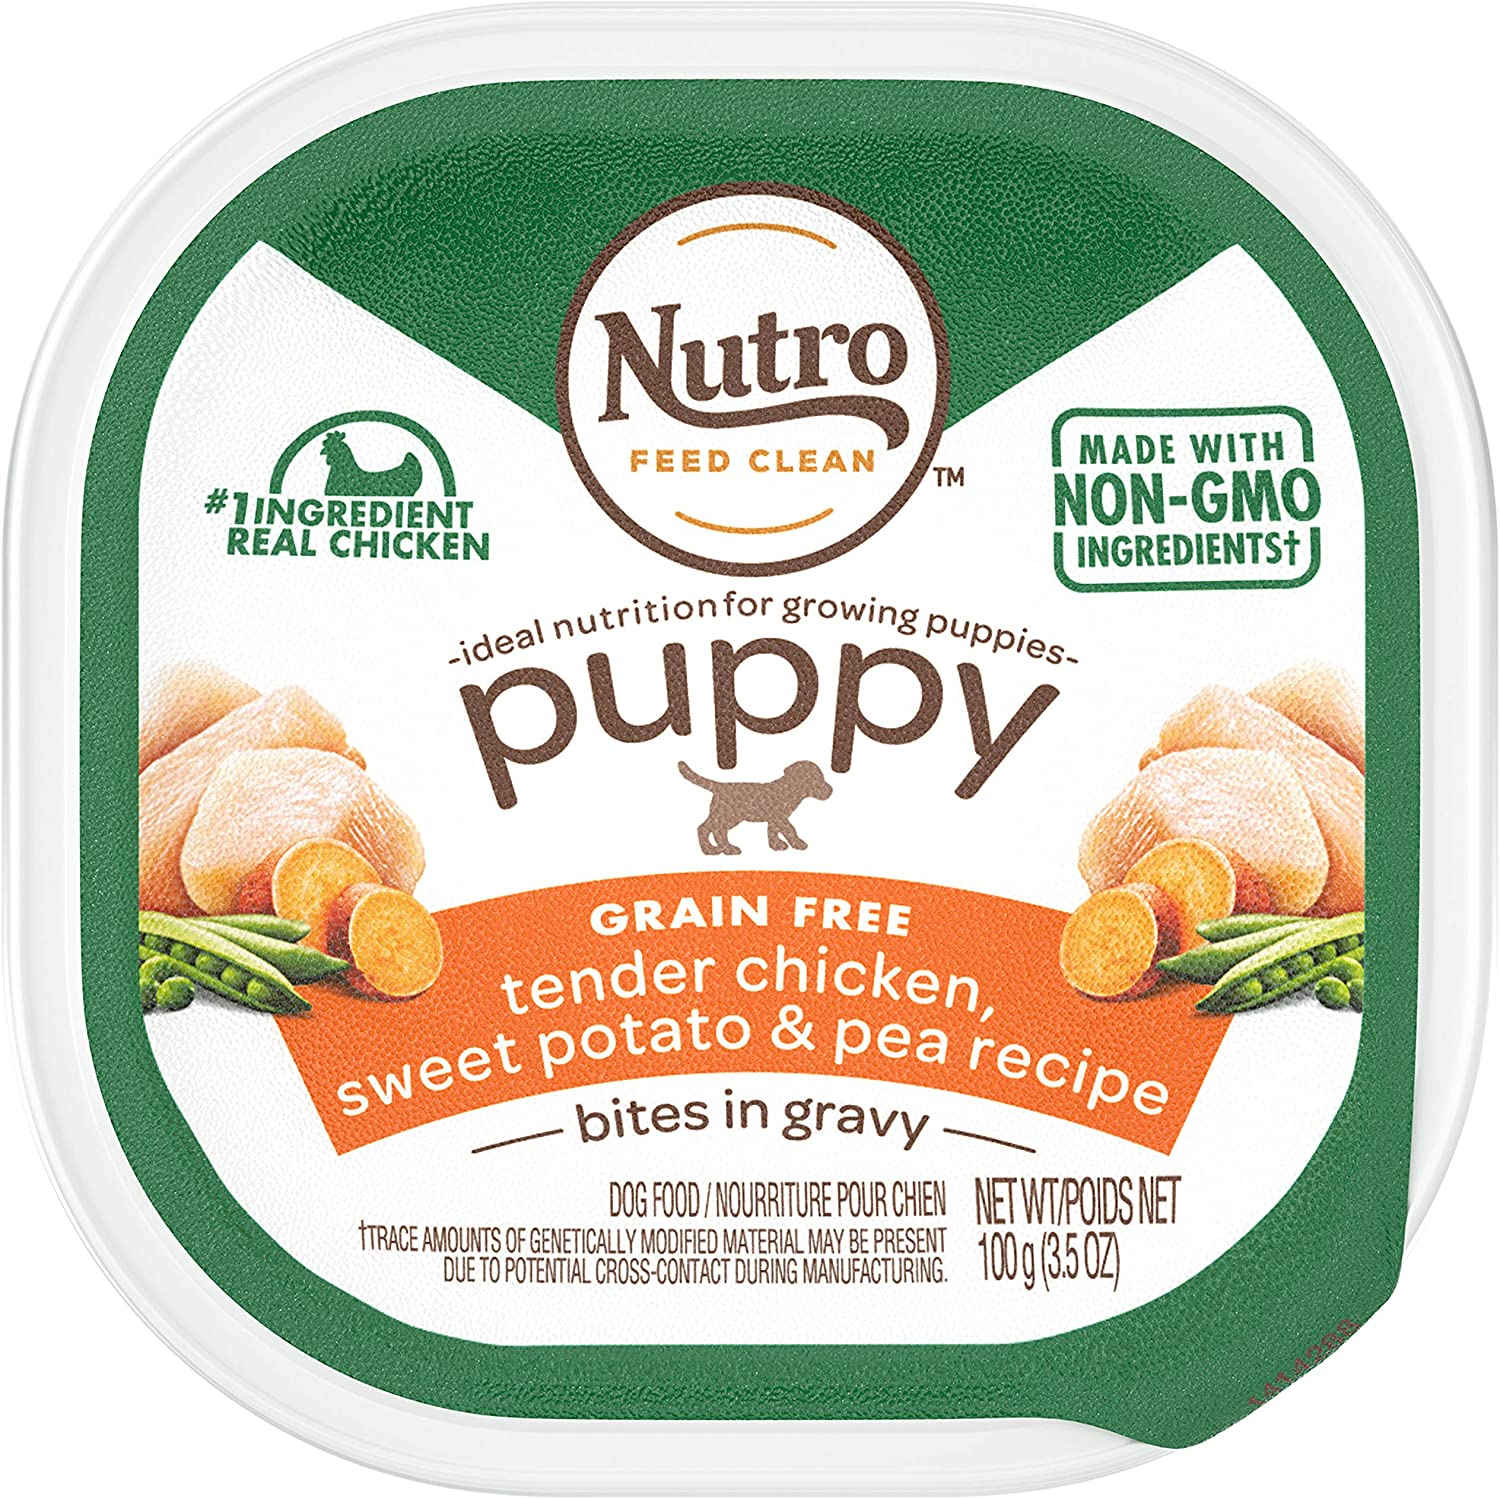 Nutro Wet Dog Food, Chicken, Sweet Potato & Pea Recipe for Puppy